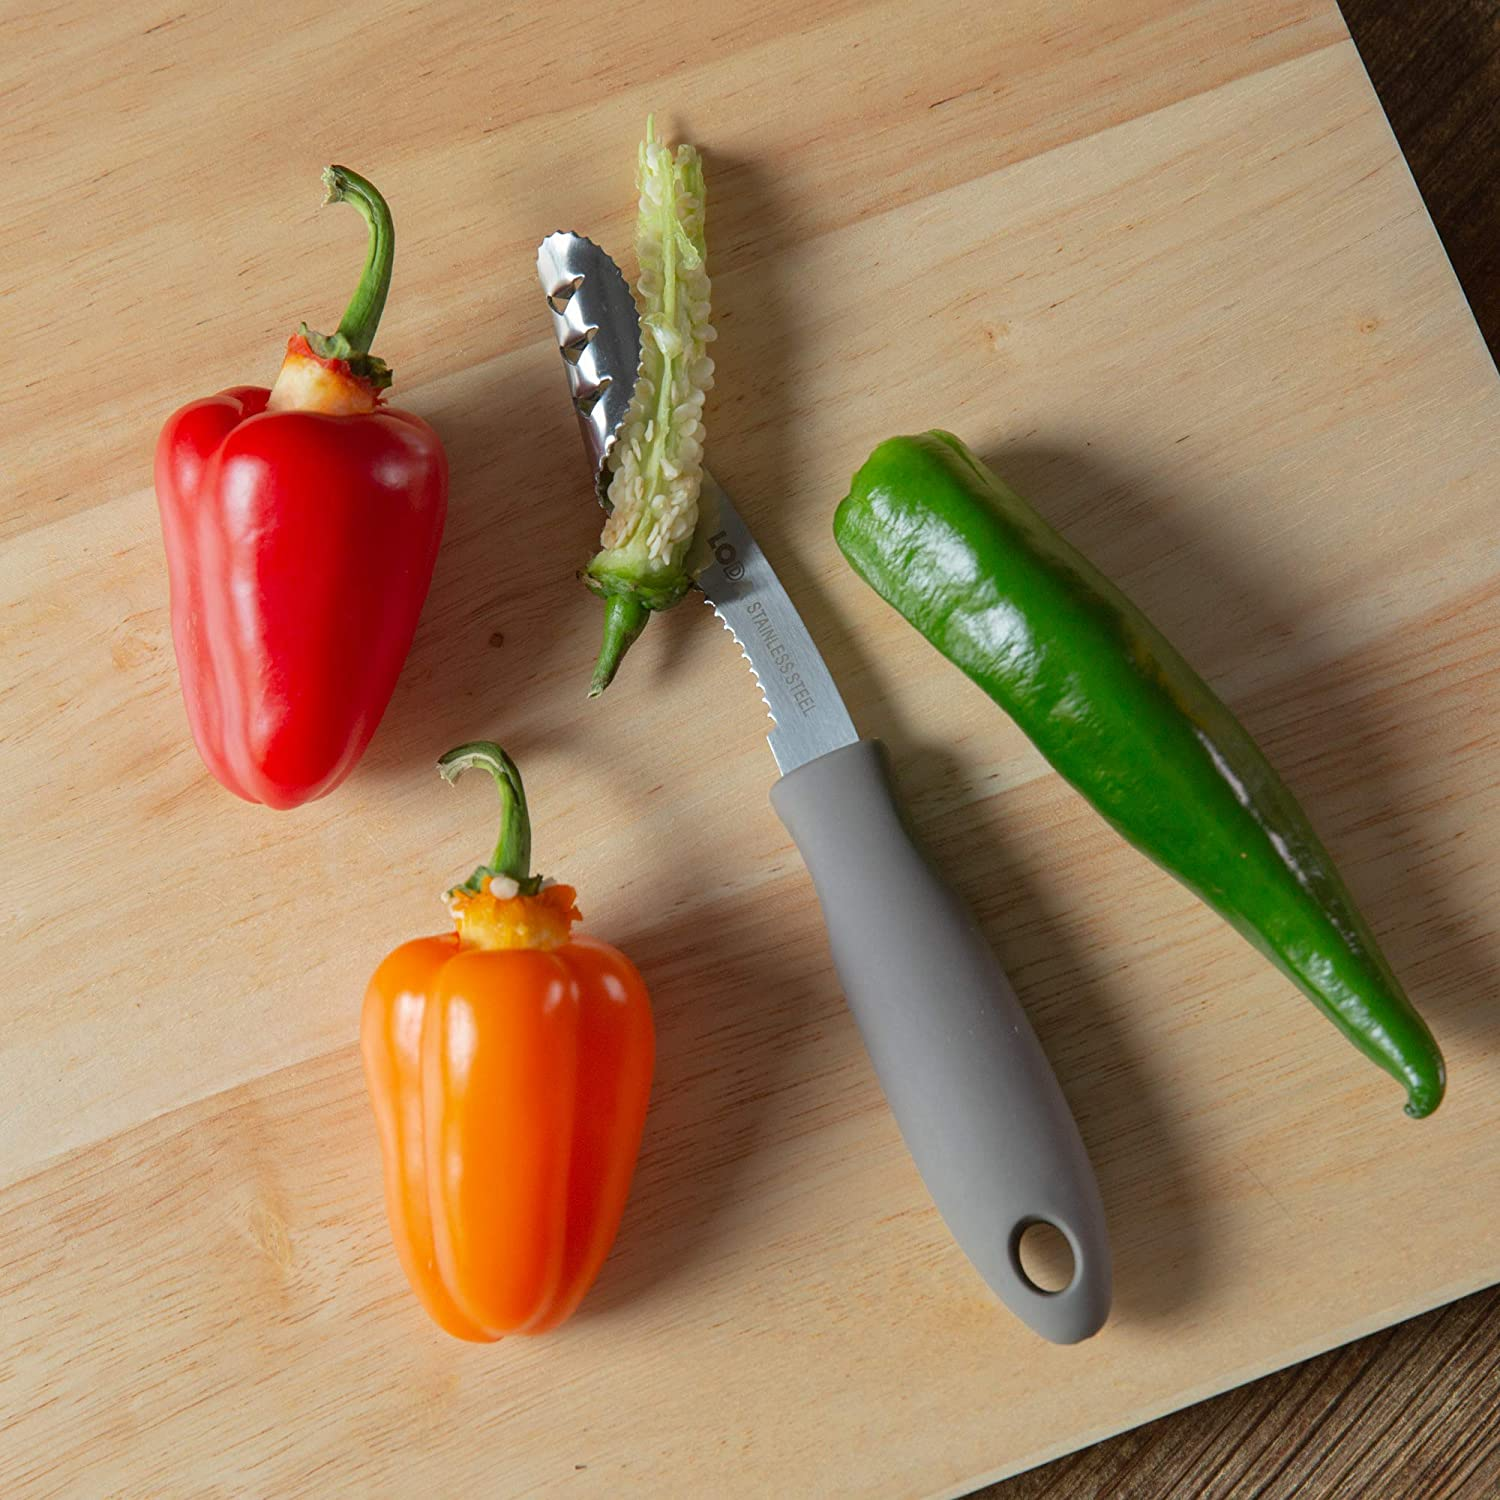 Stainless Steel 8 Jalapeno Pepper Corer with Soft Grip Handle